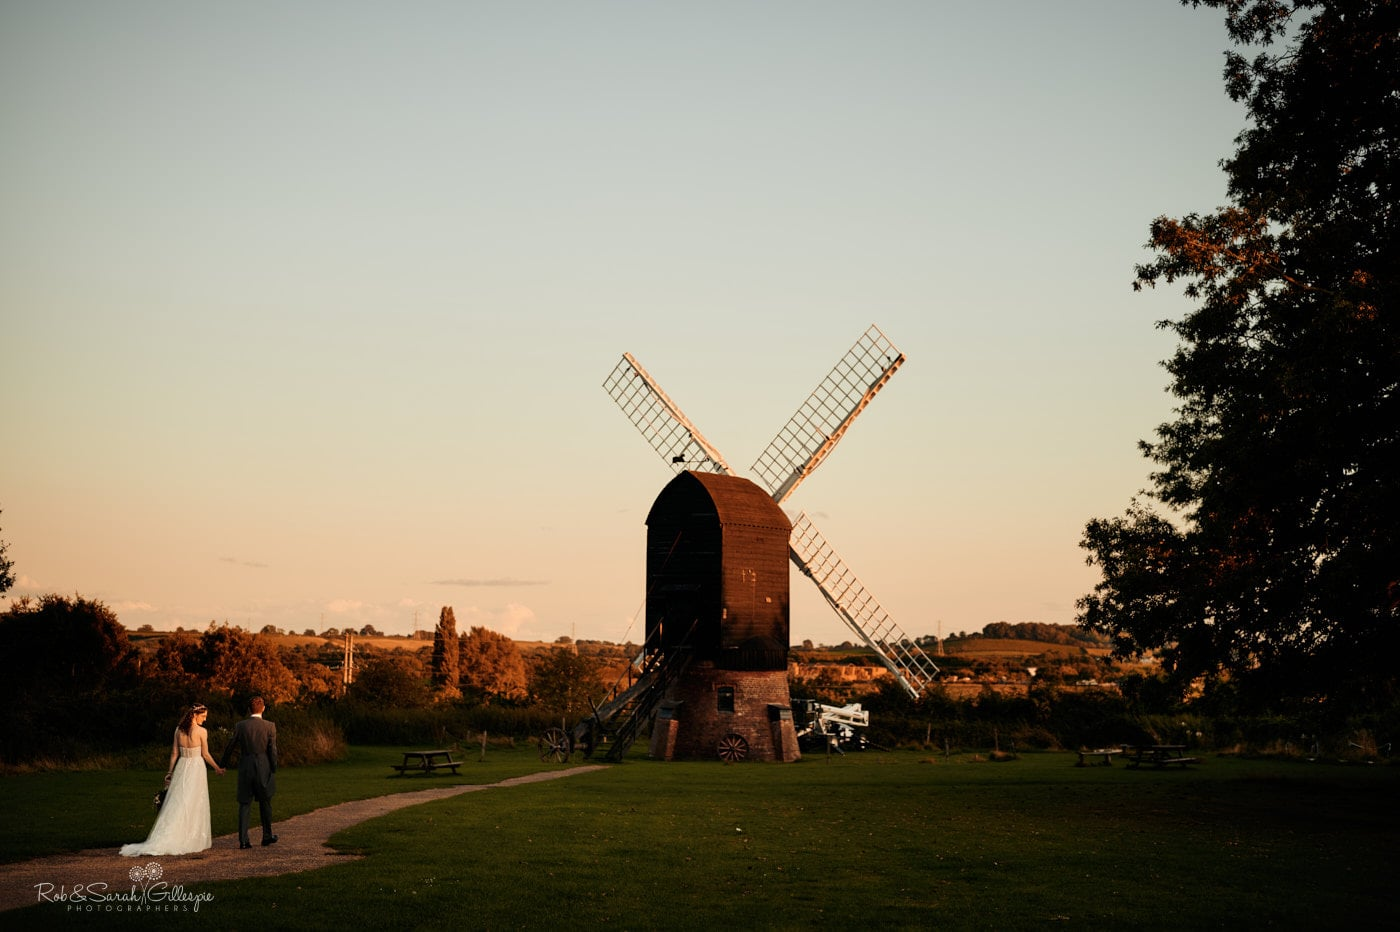 Bride and groom waking to windmill at Avoncroft Museum wedding in beautiful evening light